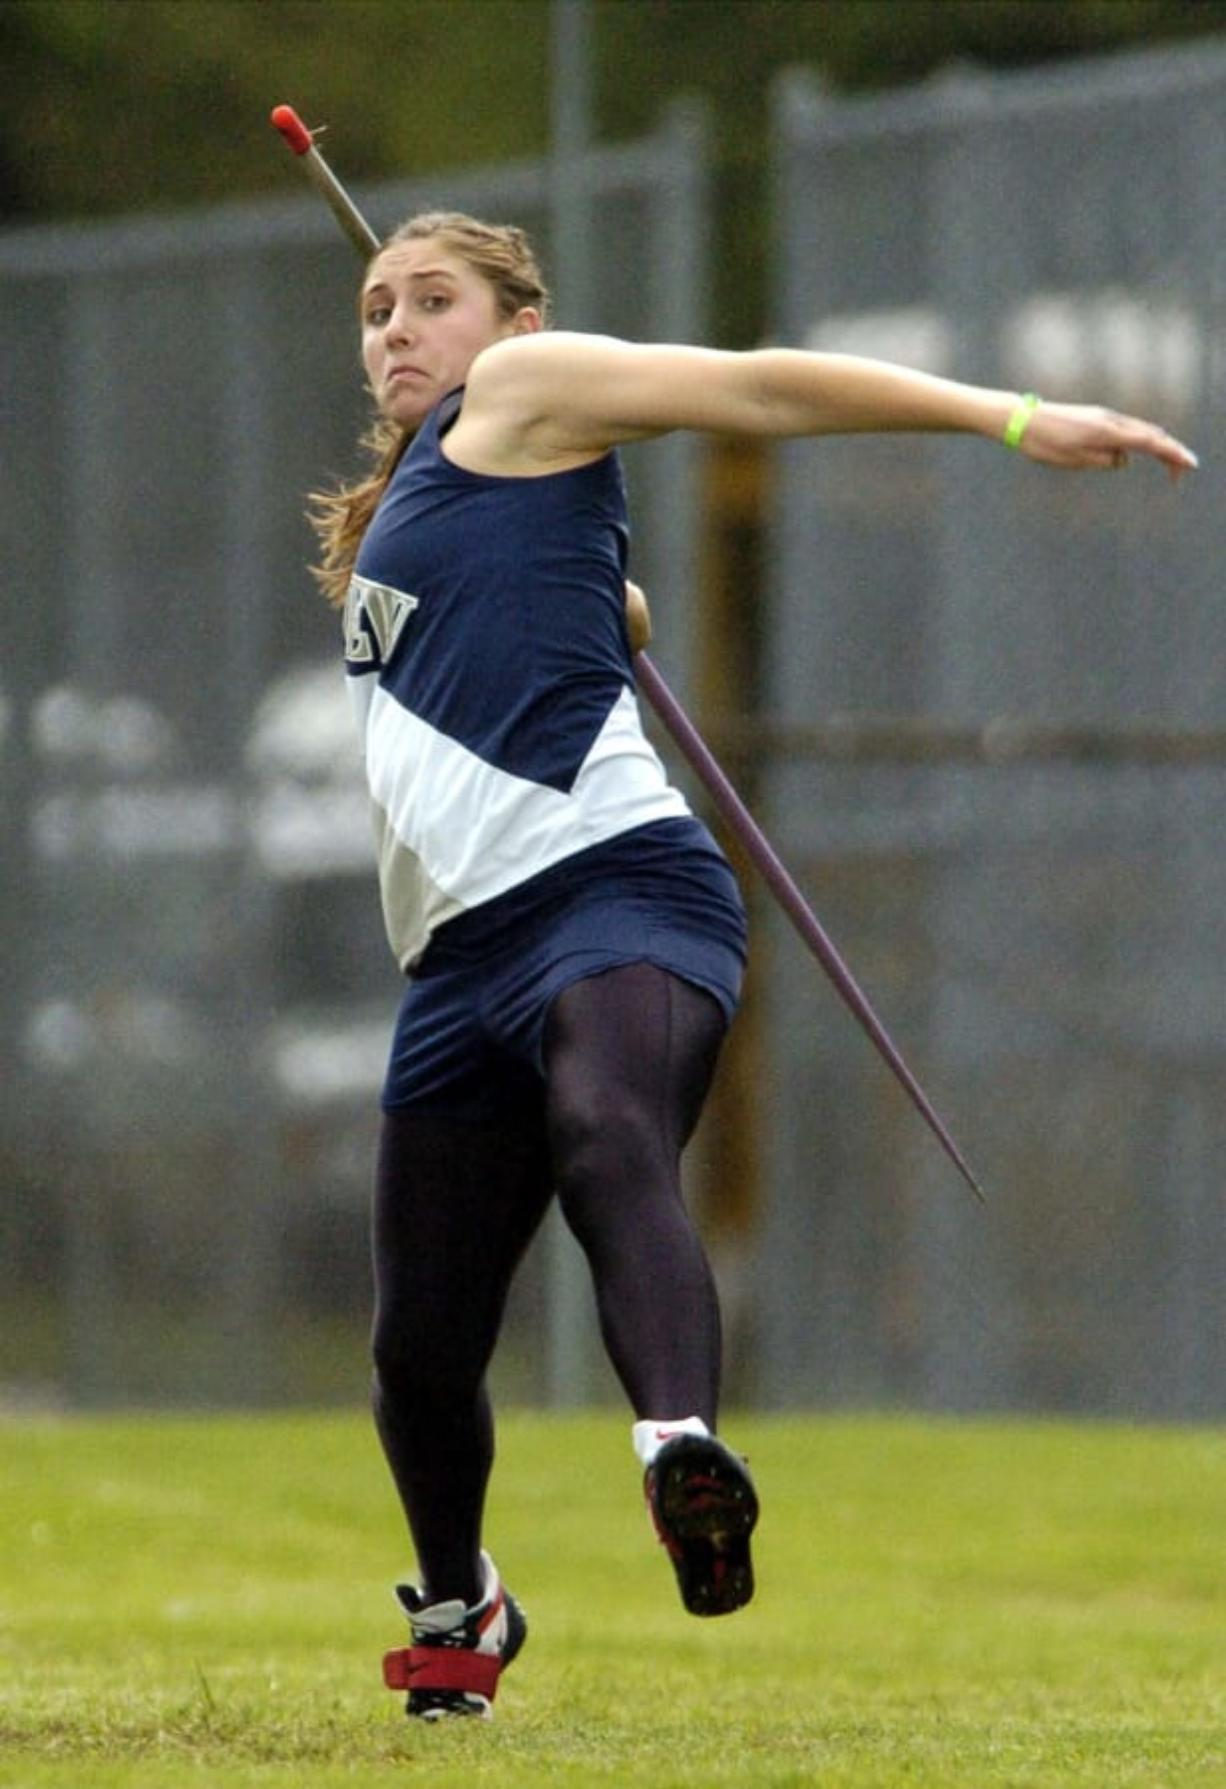 Kara Patterson of Skyview High School won the javelin with a throw of 137 feet, 9 inches at the Southwest Washington District 4 track and field meet at Lincoln Bowl in Tacoma. The victory also qualified Patterson for the state track and field meet next weekend.